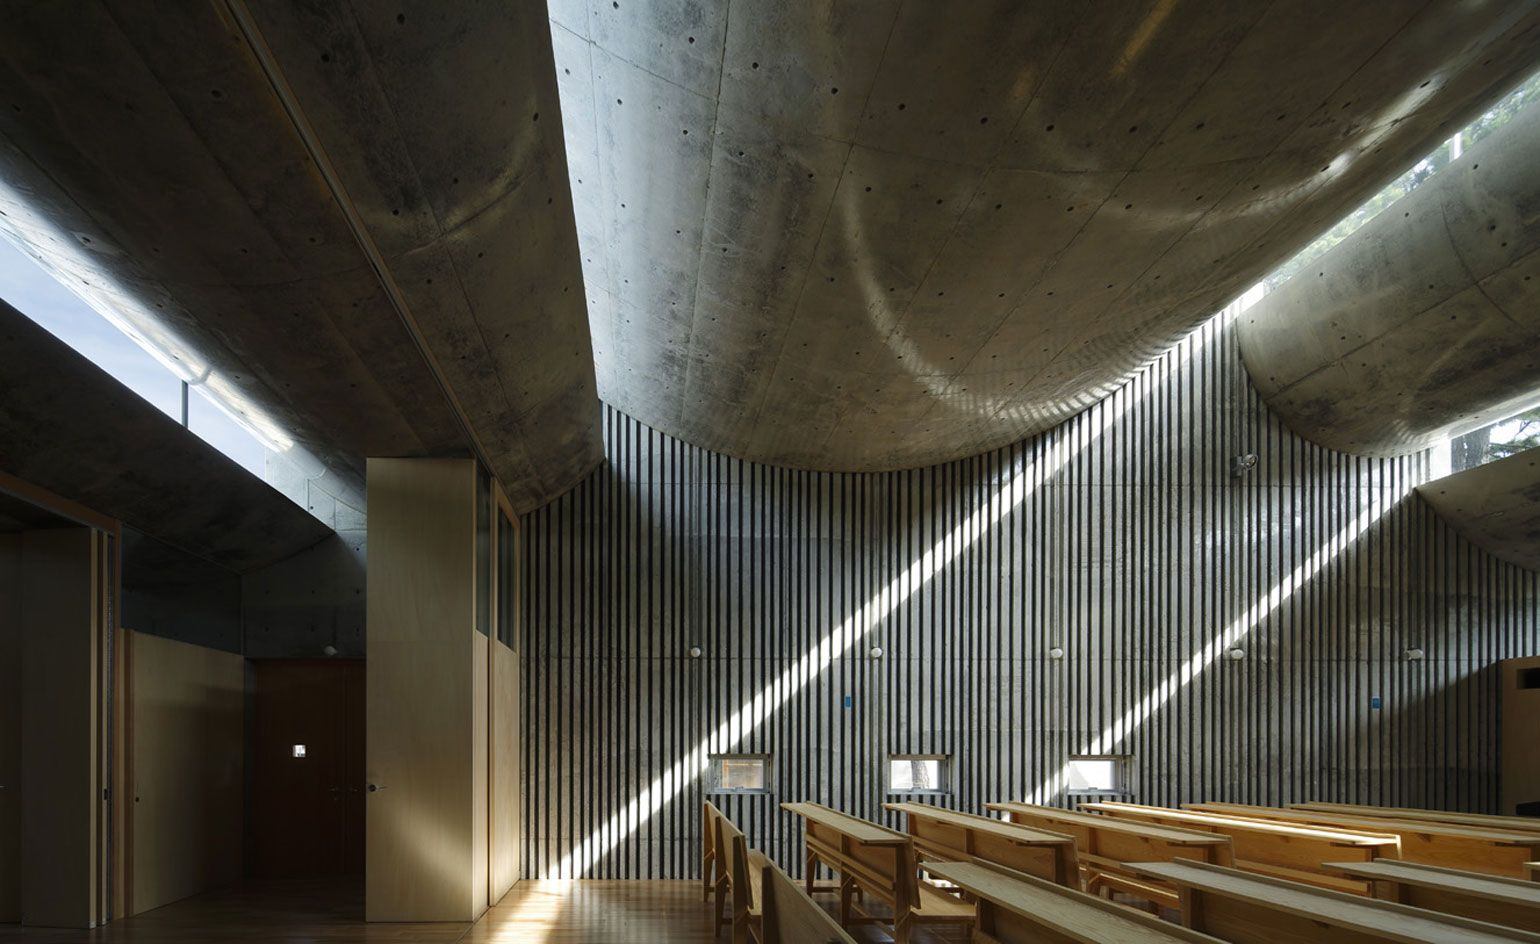 The Architecture Projects Reshaping Japan | Architecture | Wallpaper*  Magazine